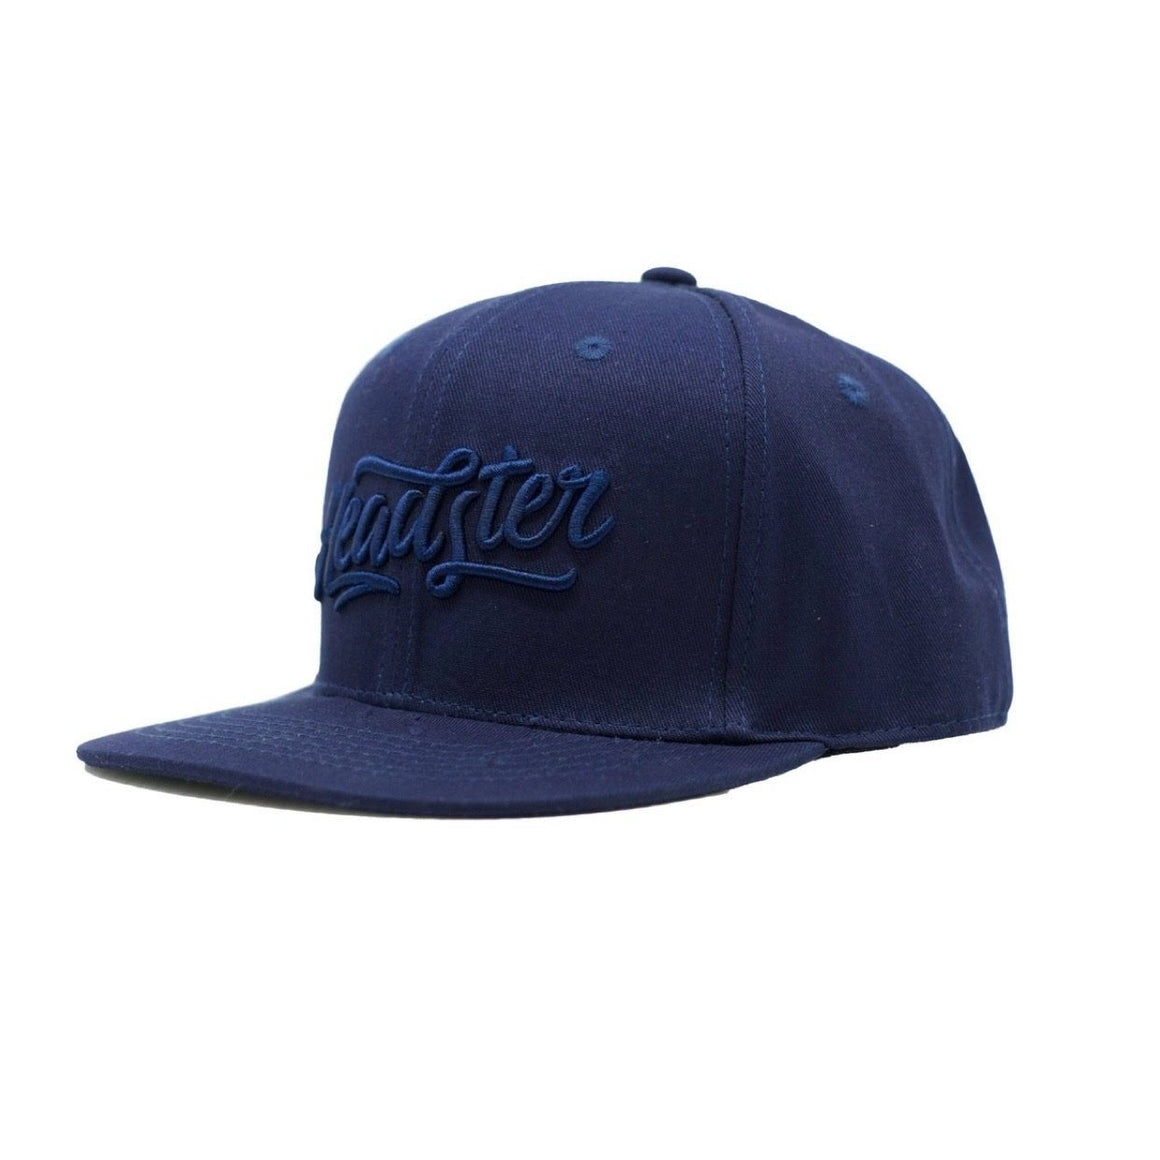 Headster - Everyday Navy Snapback Hats Headster